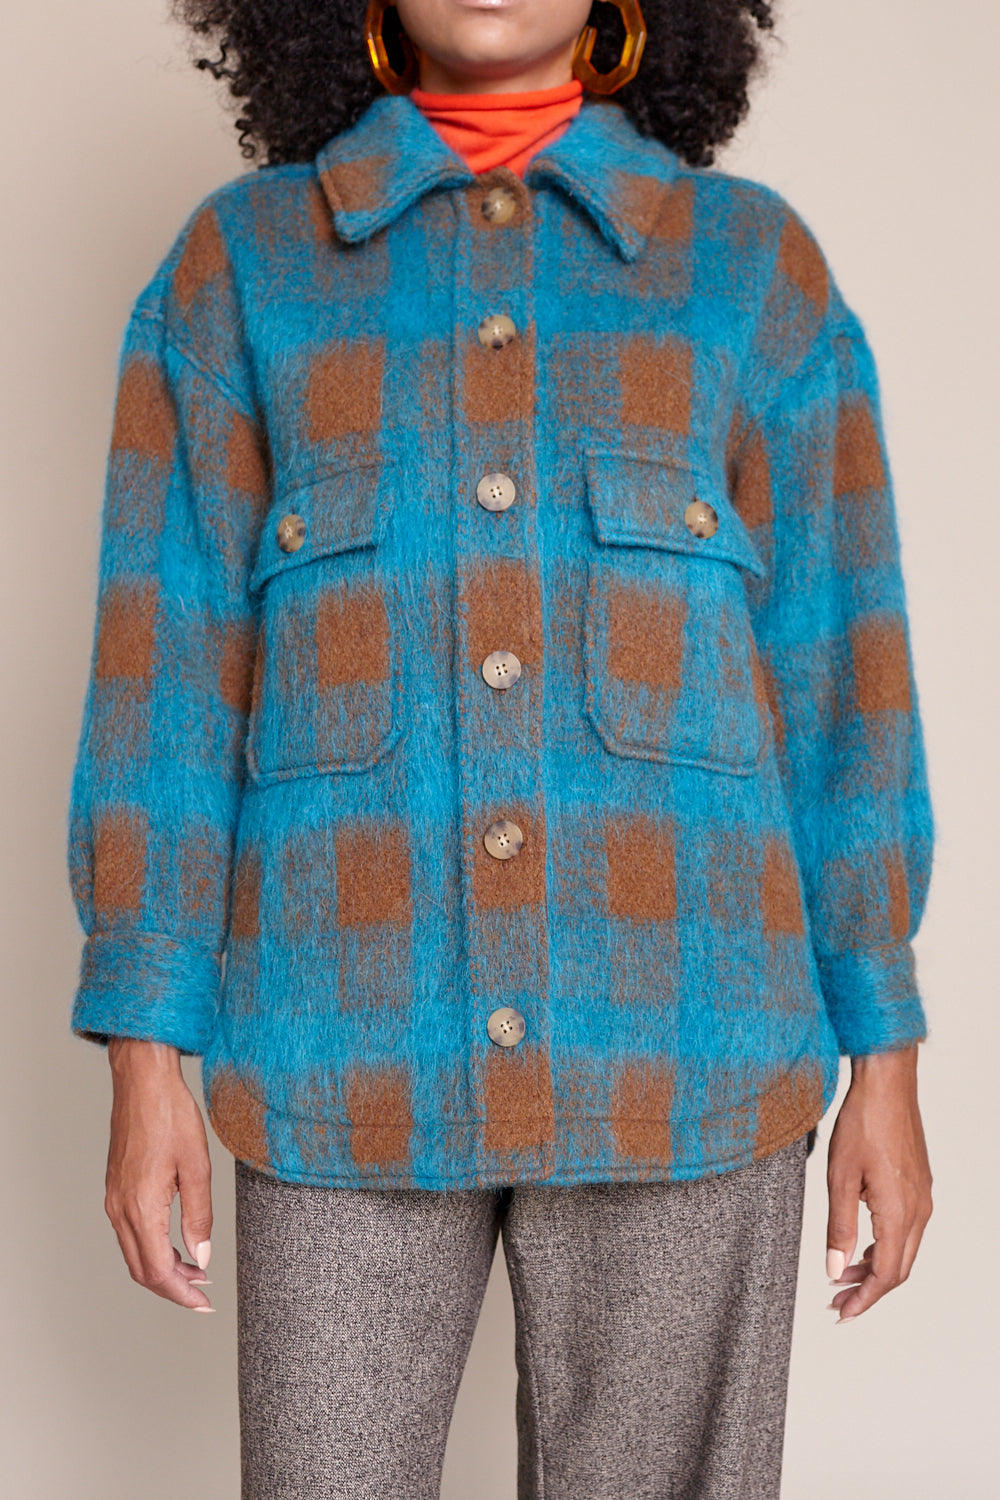 Wilson Jacket in Turquoise Plaid